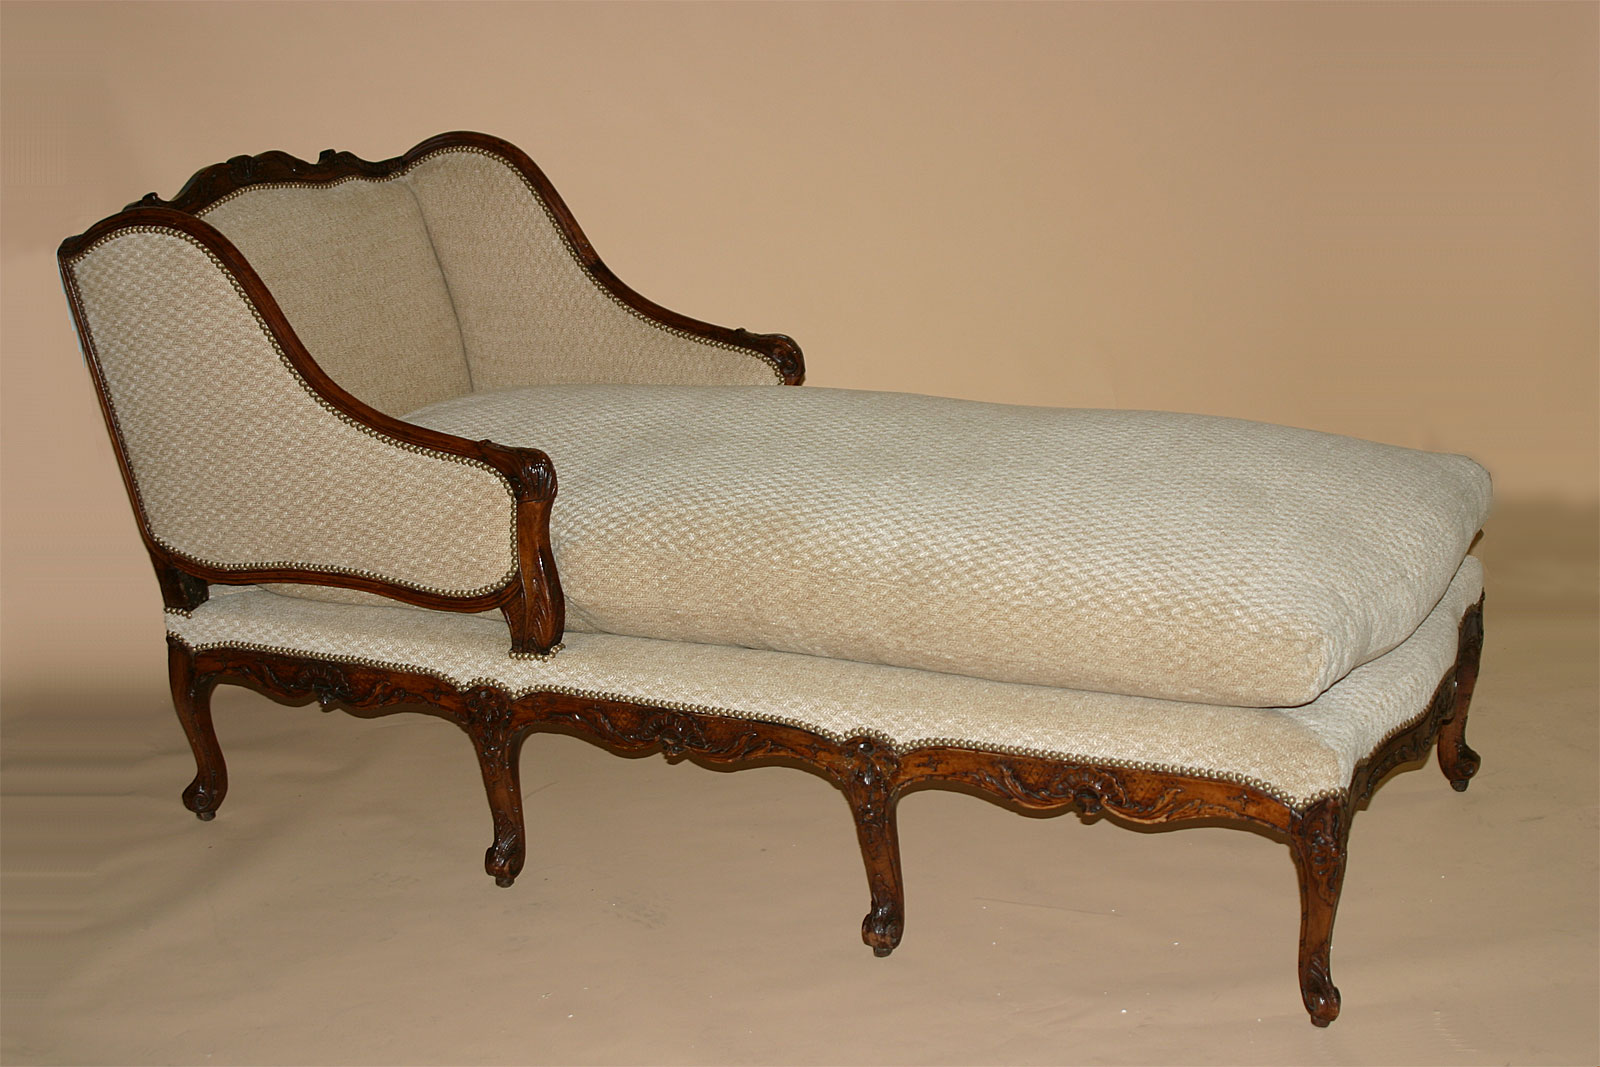 French louis xv period chaise longue for sale antiques for Antique chaise for sale